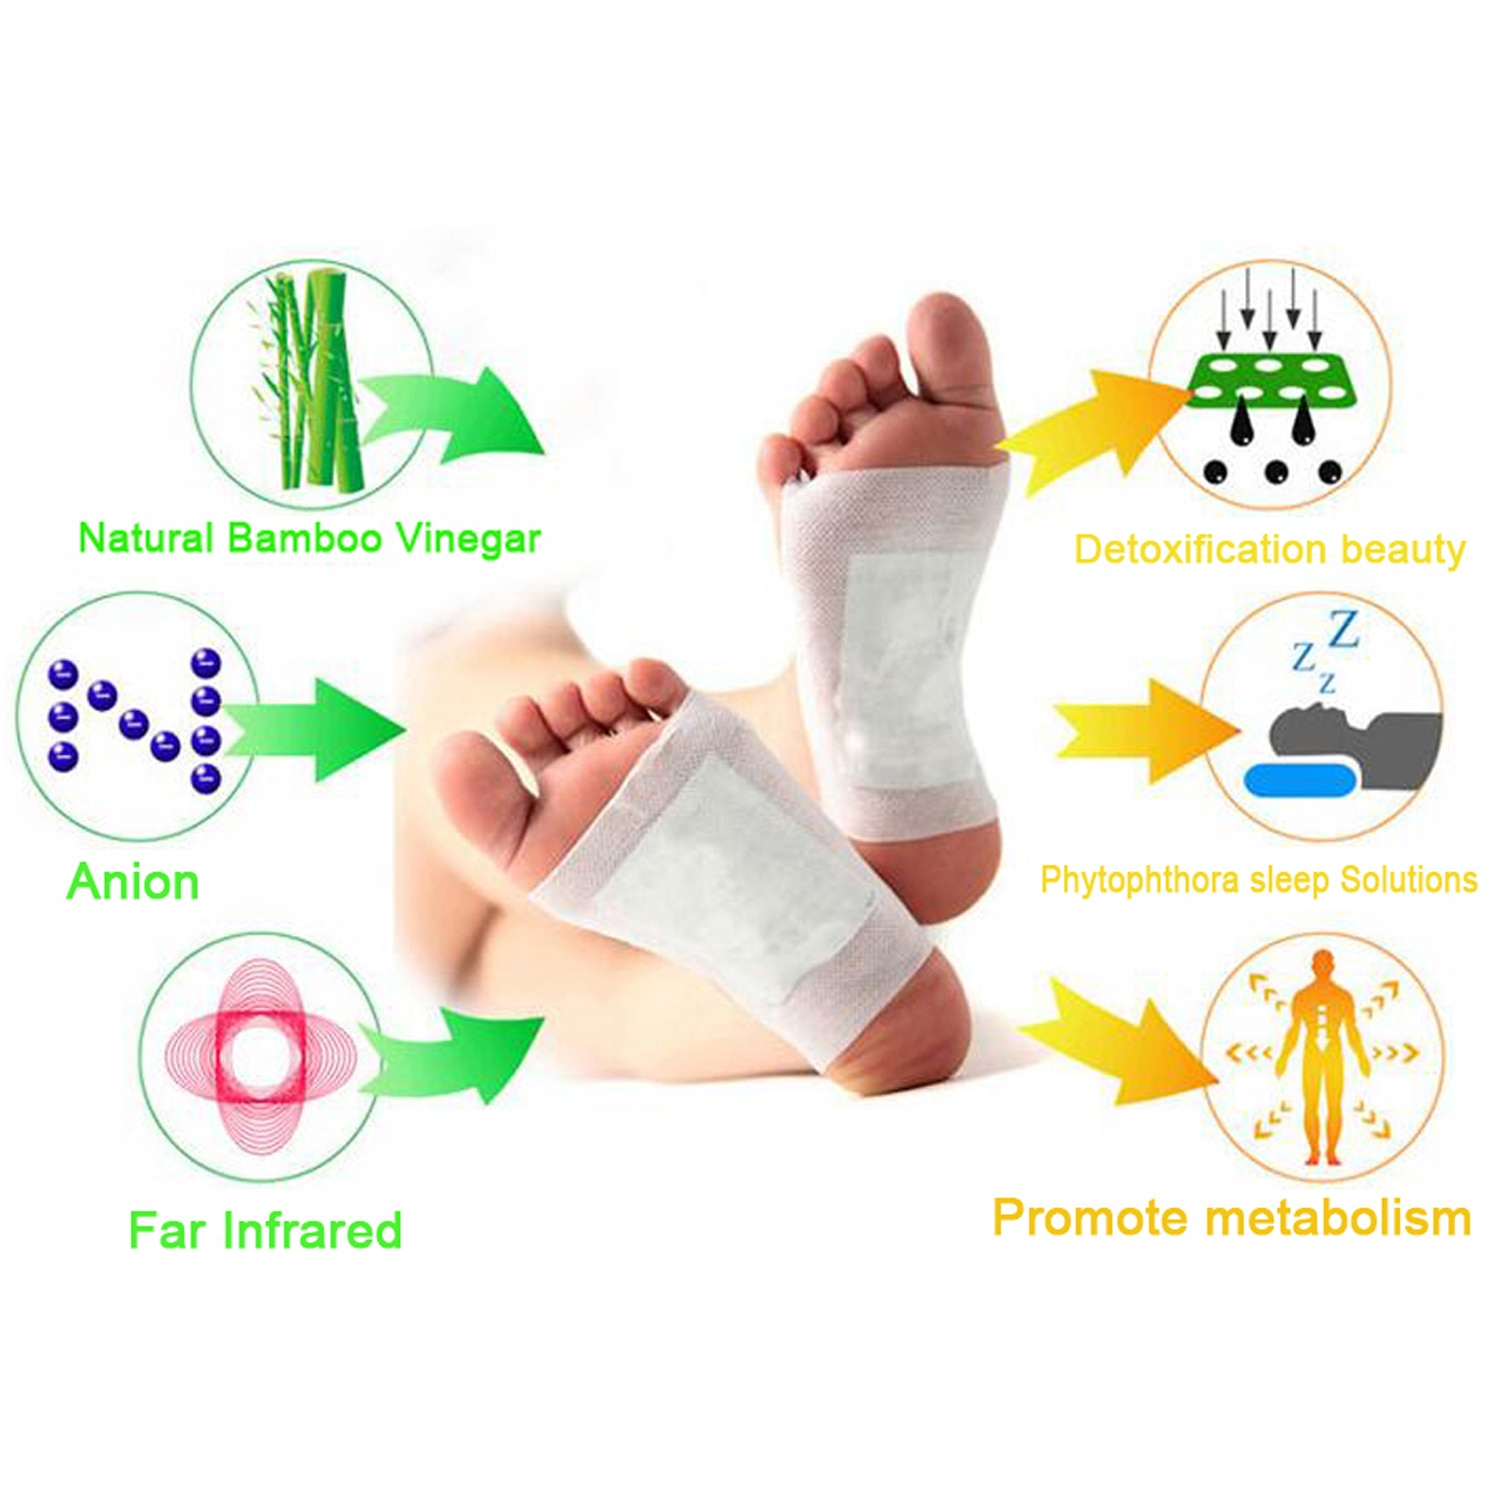 Hot Sell 50pcs Patches Adhesives Kinoki Detox Foot Patches Pads Body Toxins Feet Slimming Cleansing Herbal Adhesive  JMN021